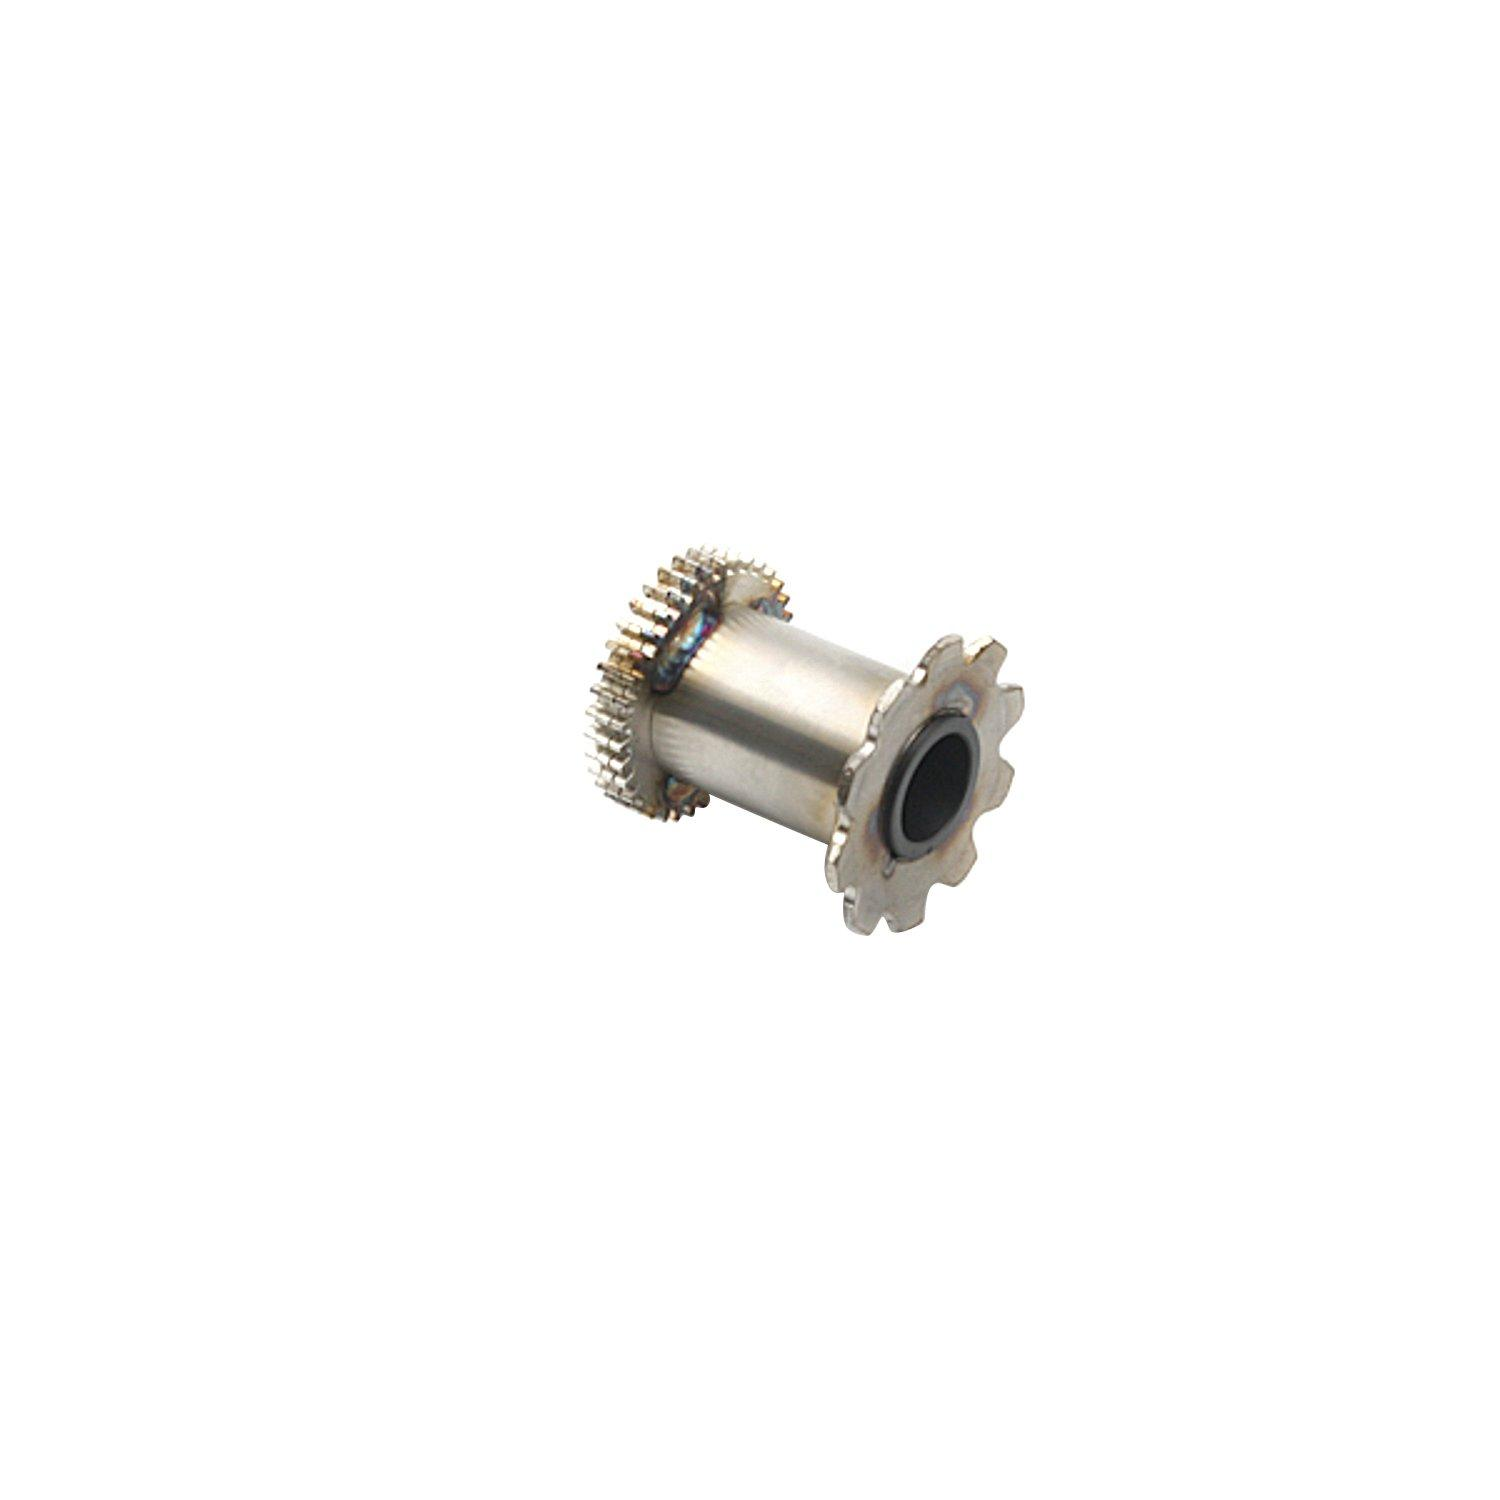 MARSHALL AIR SYSTEMS IDLER GEAR